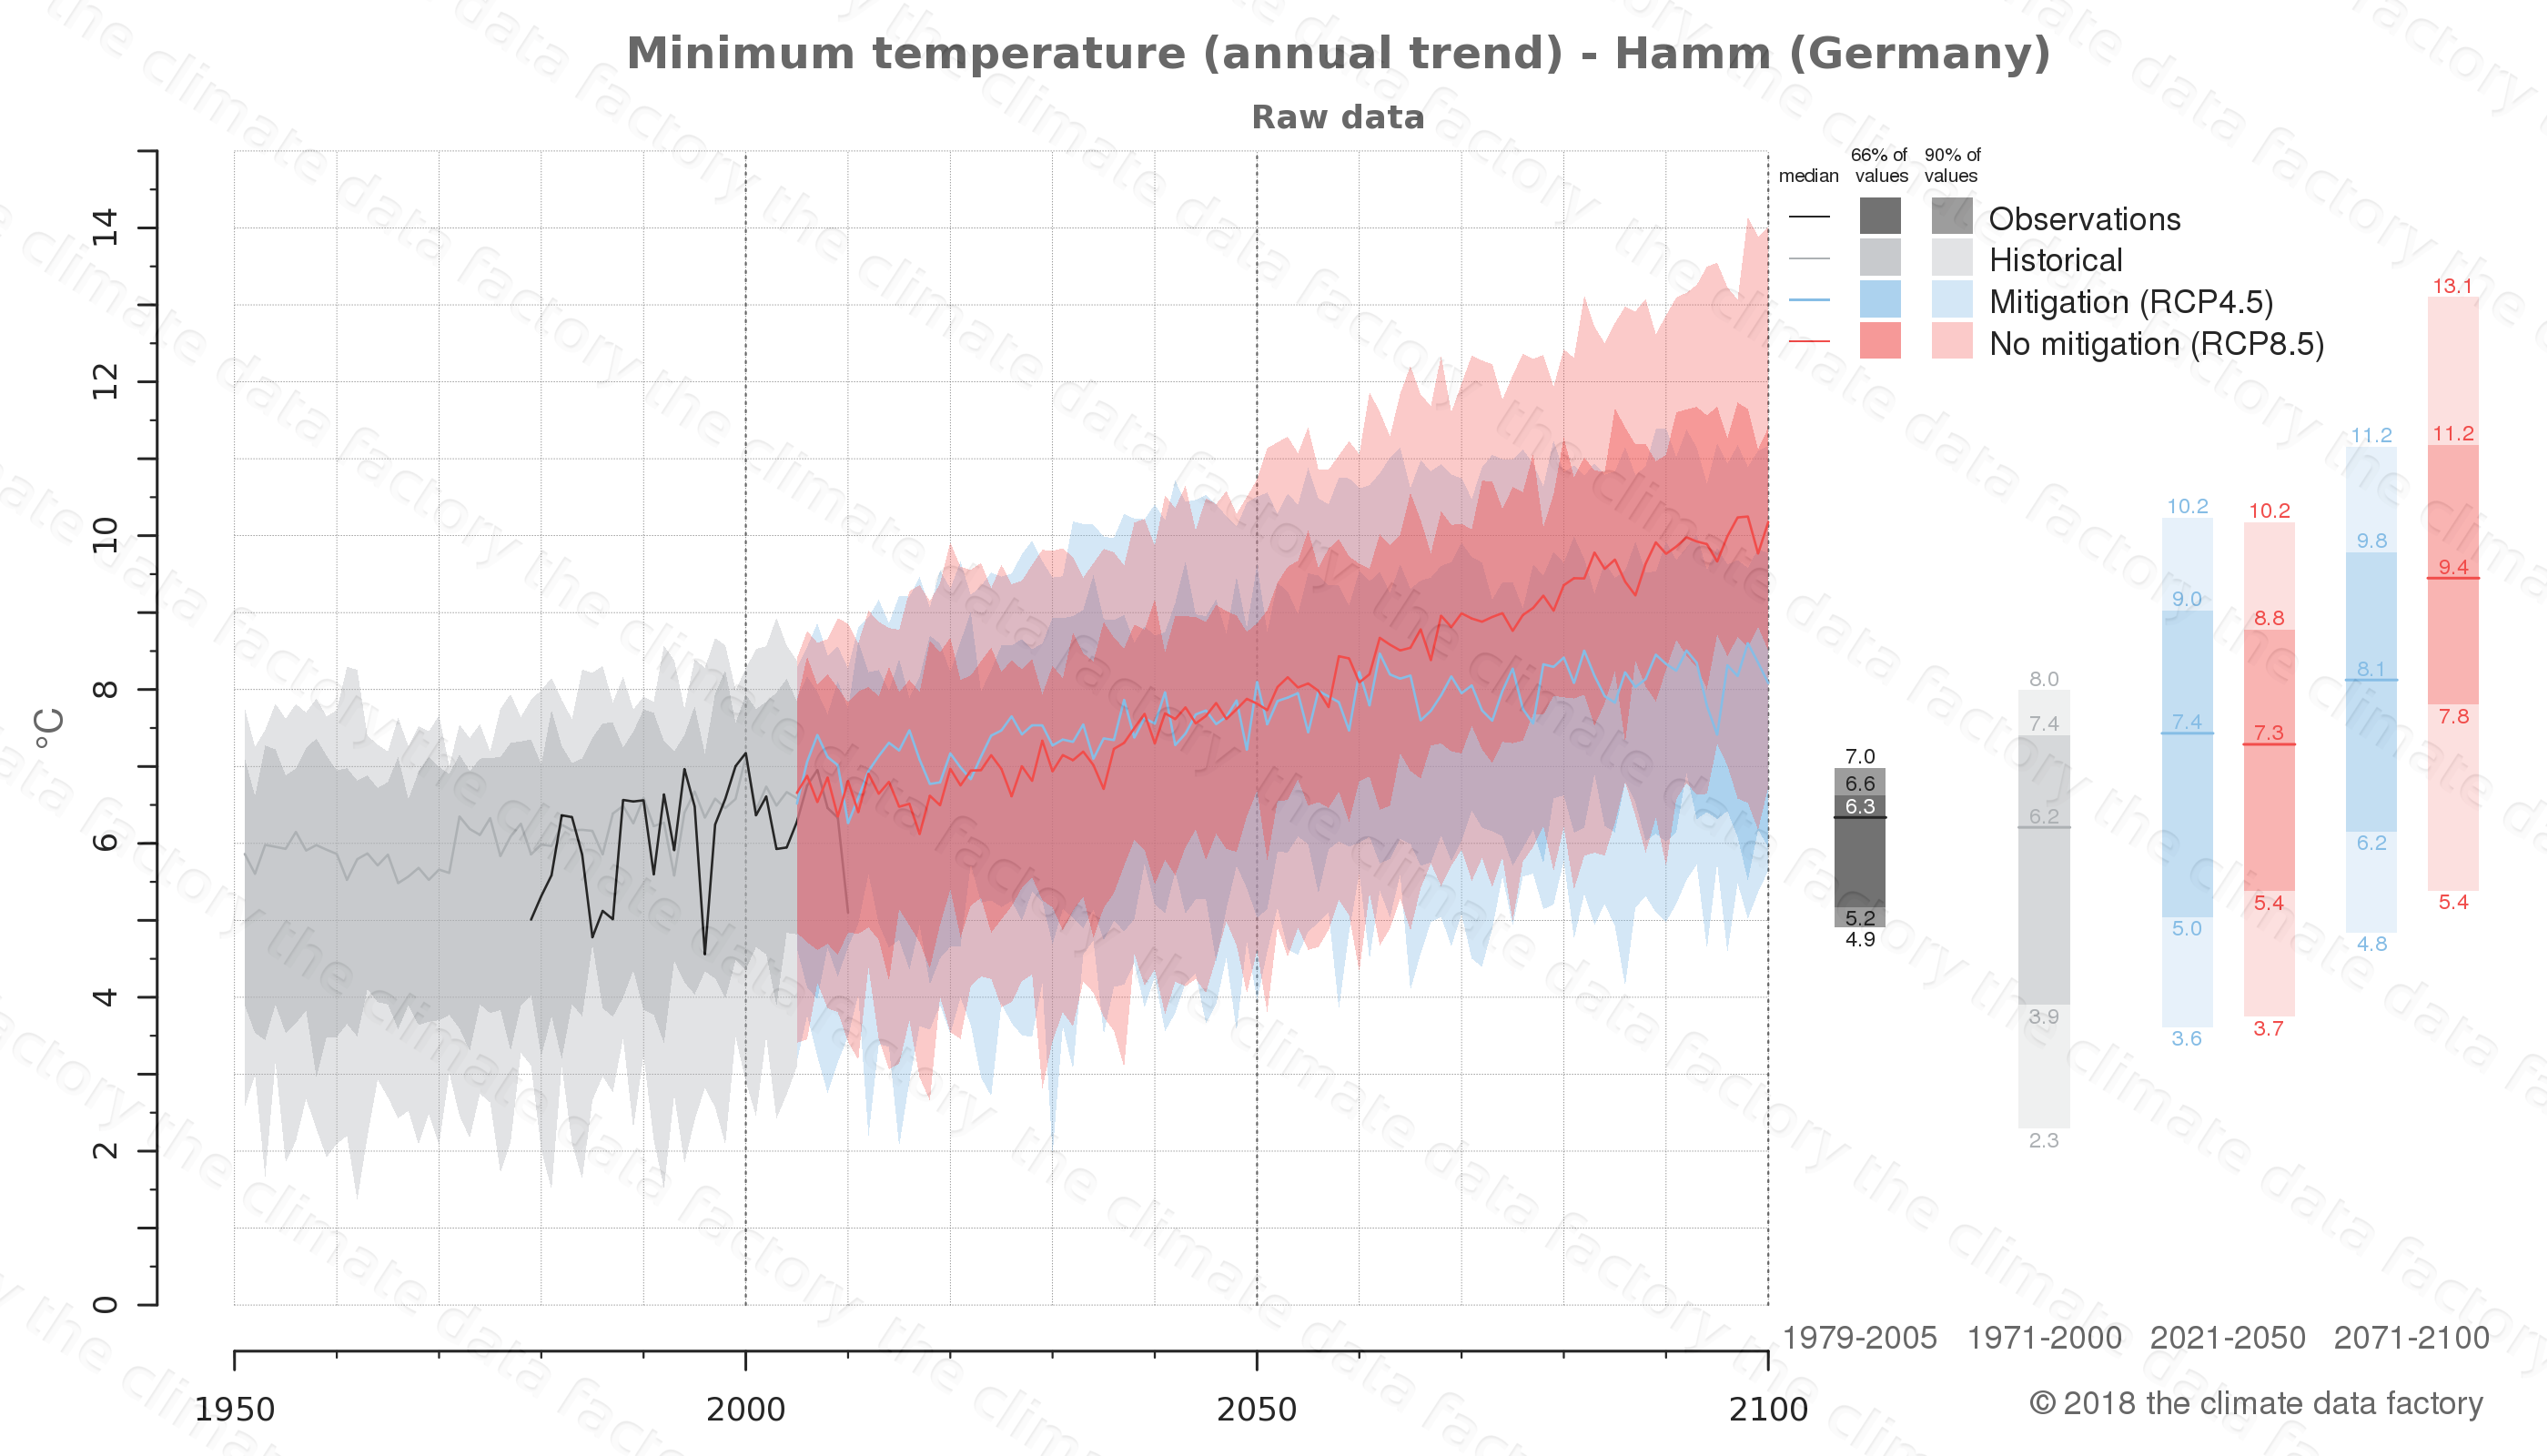 climate change data policy adaptation climate graph city data minimum-temperature hamm germany